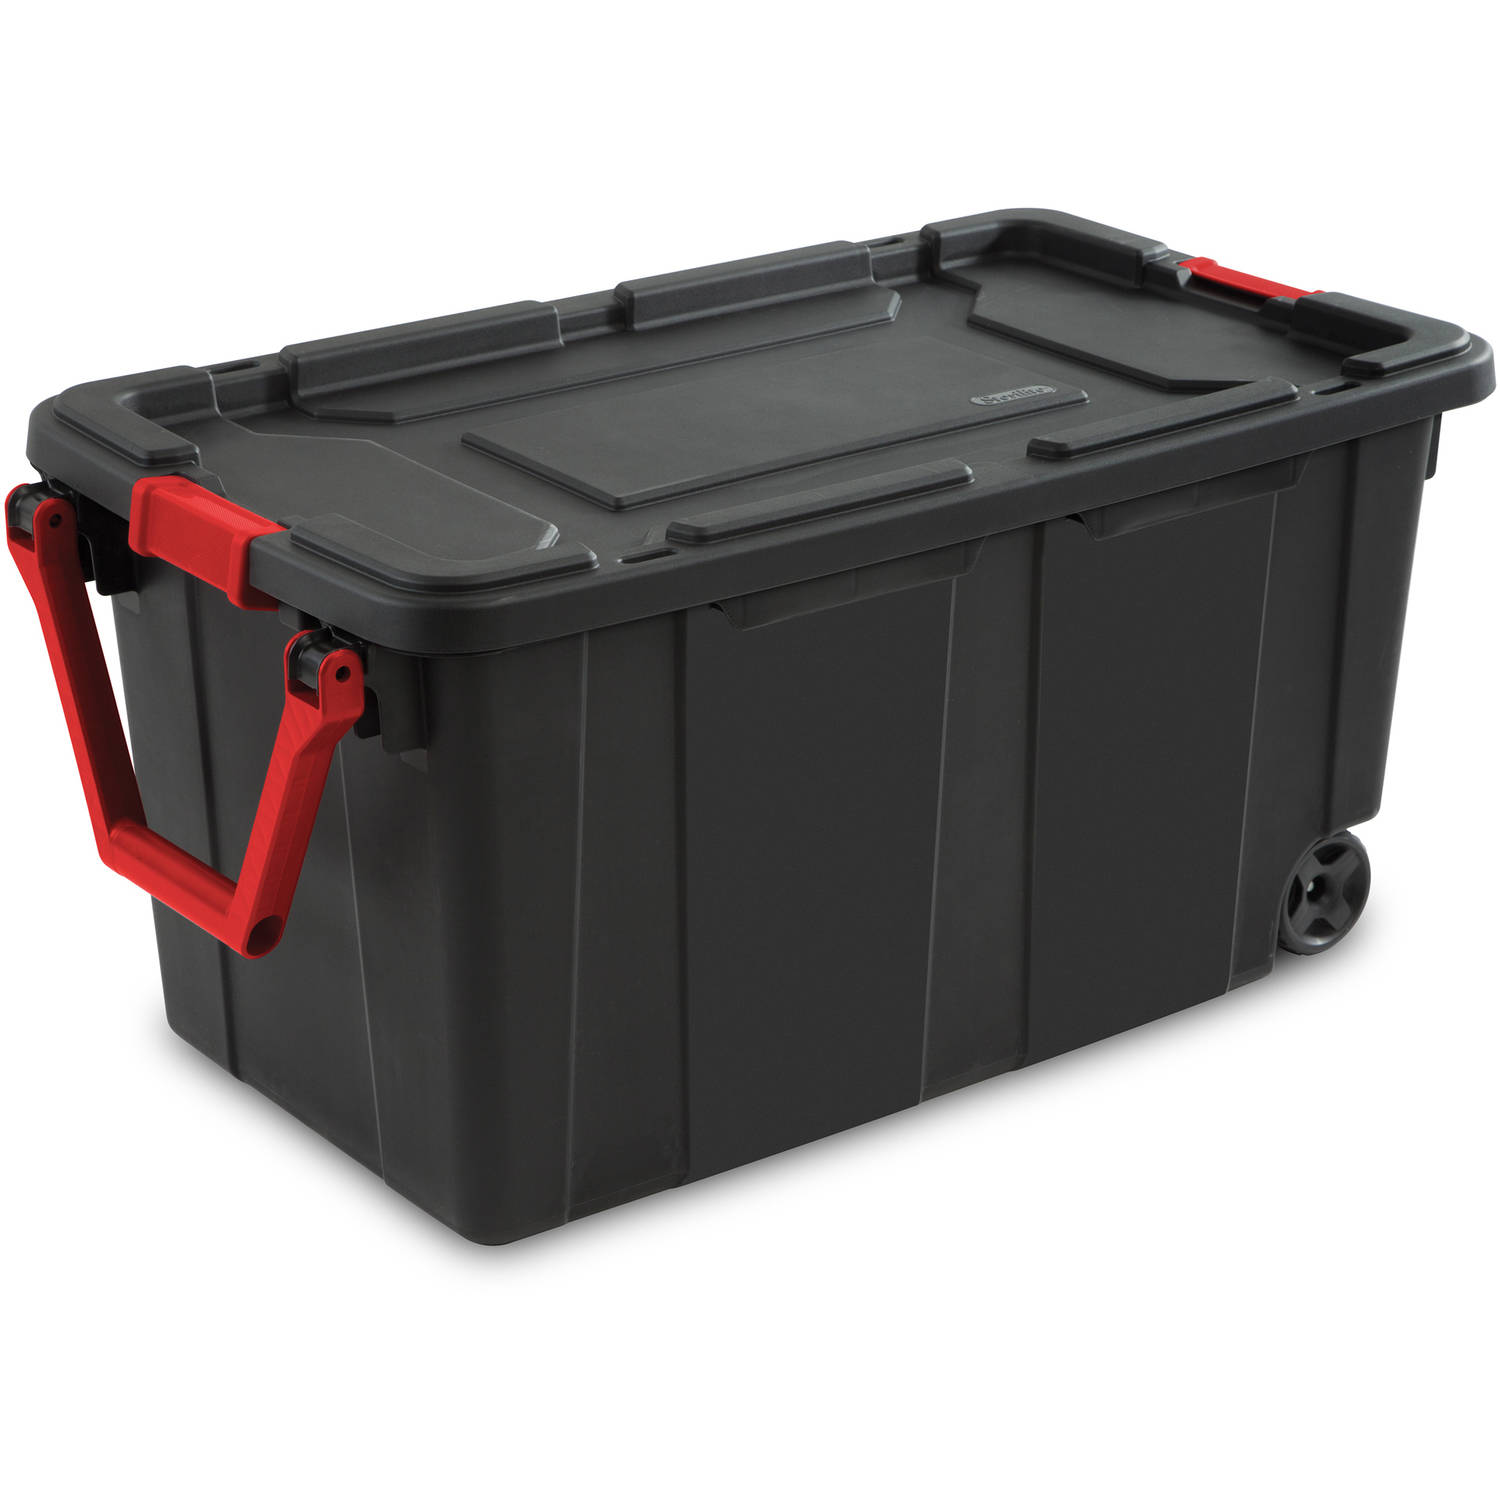 Sterilite 50 Gal Stacker Tote Black Available in Case of 3 or